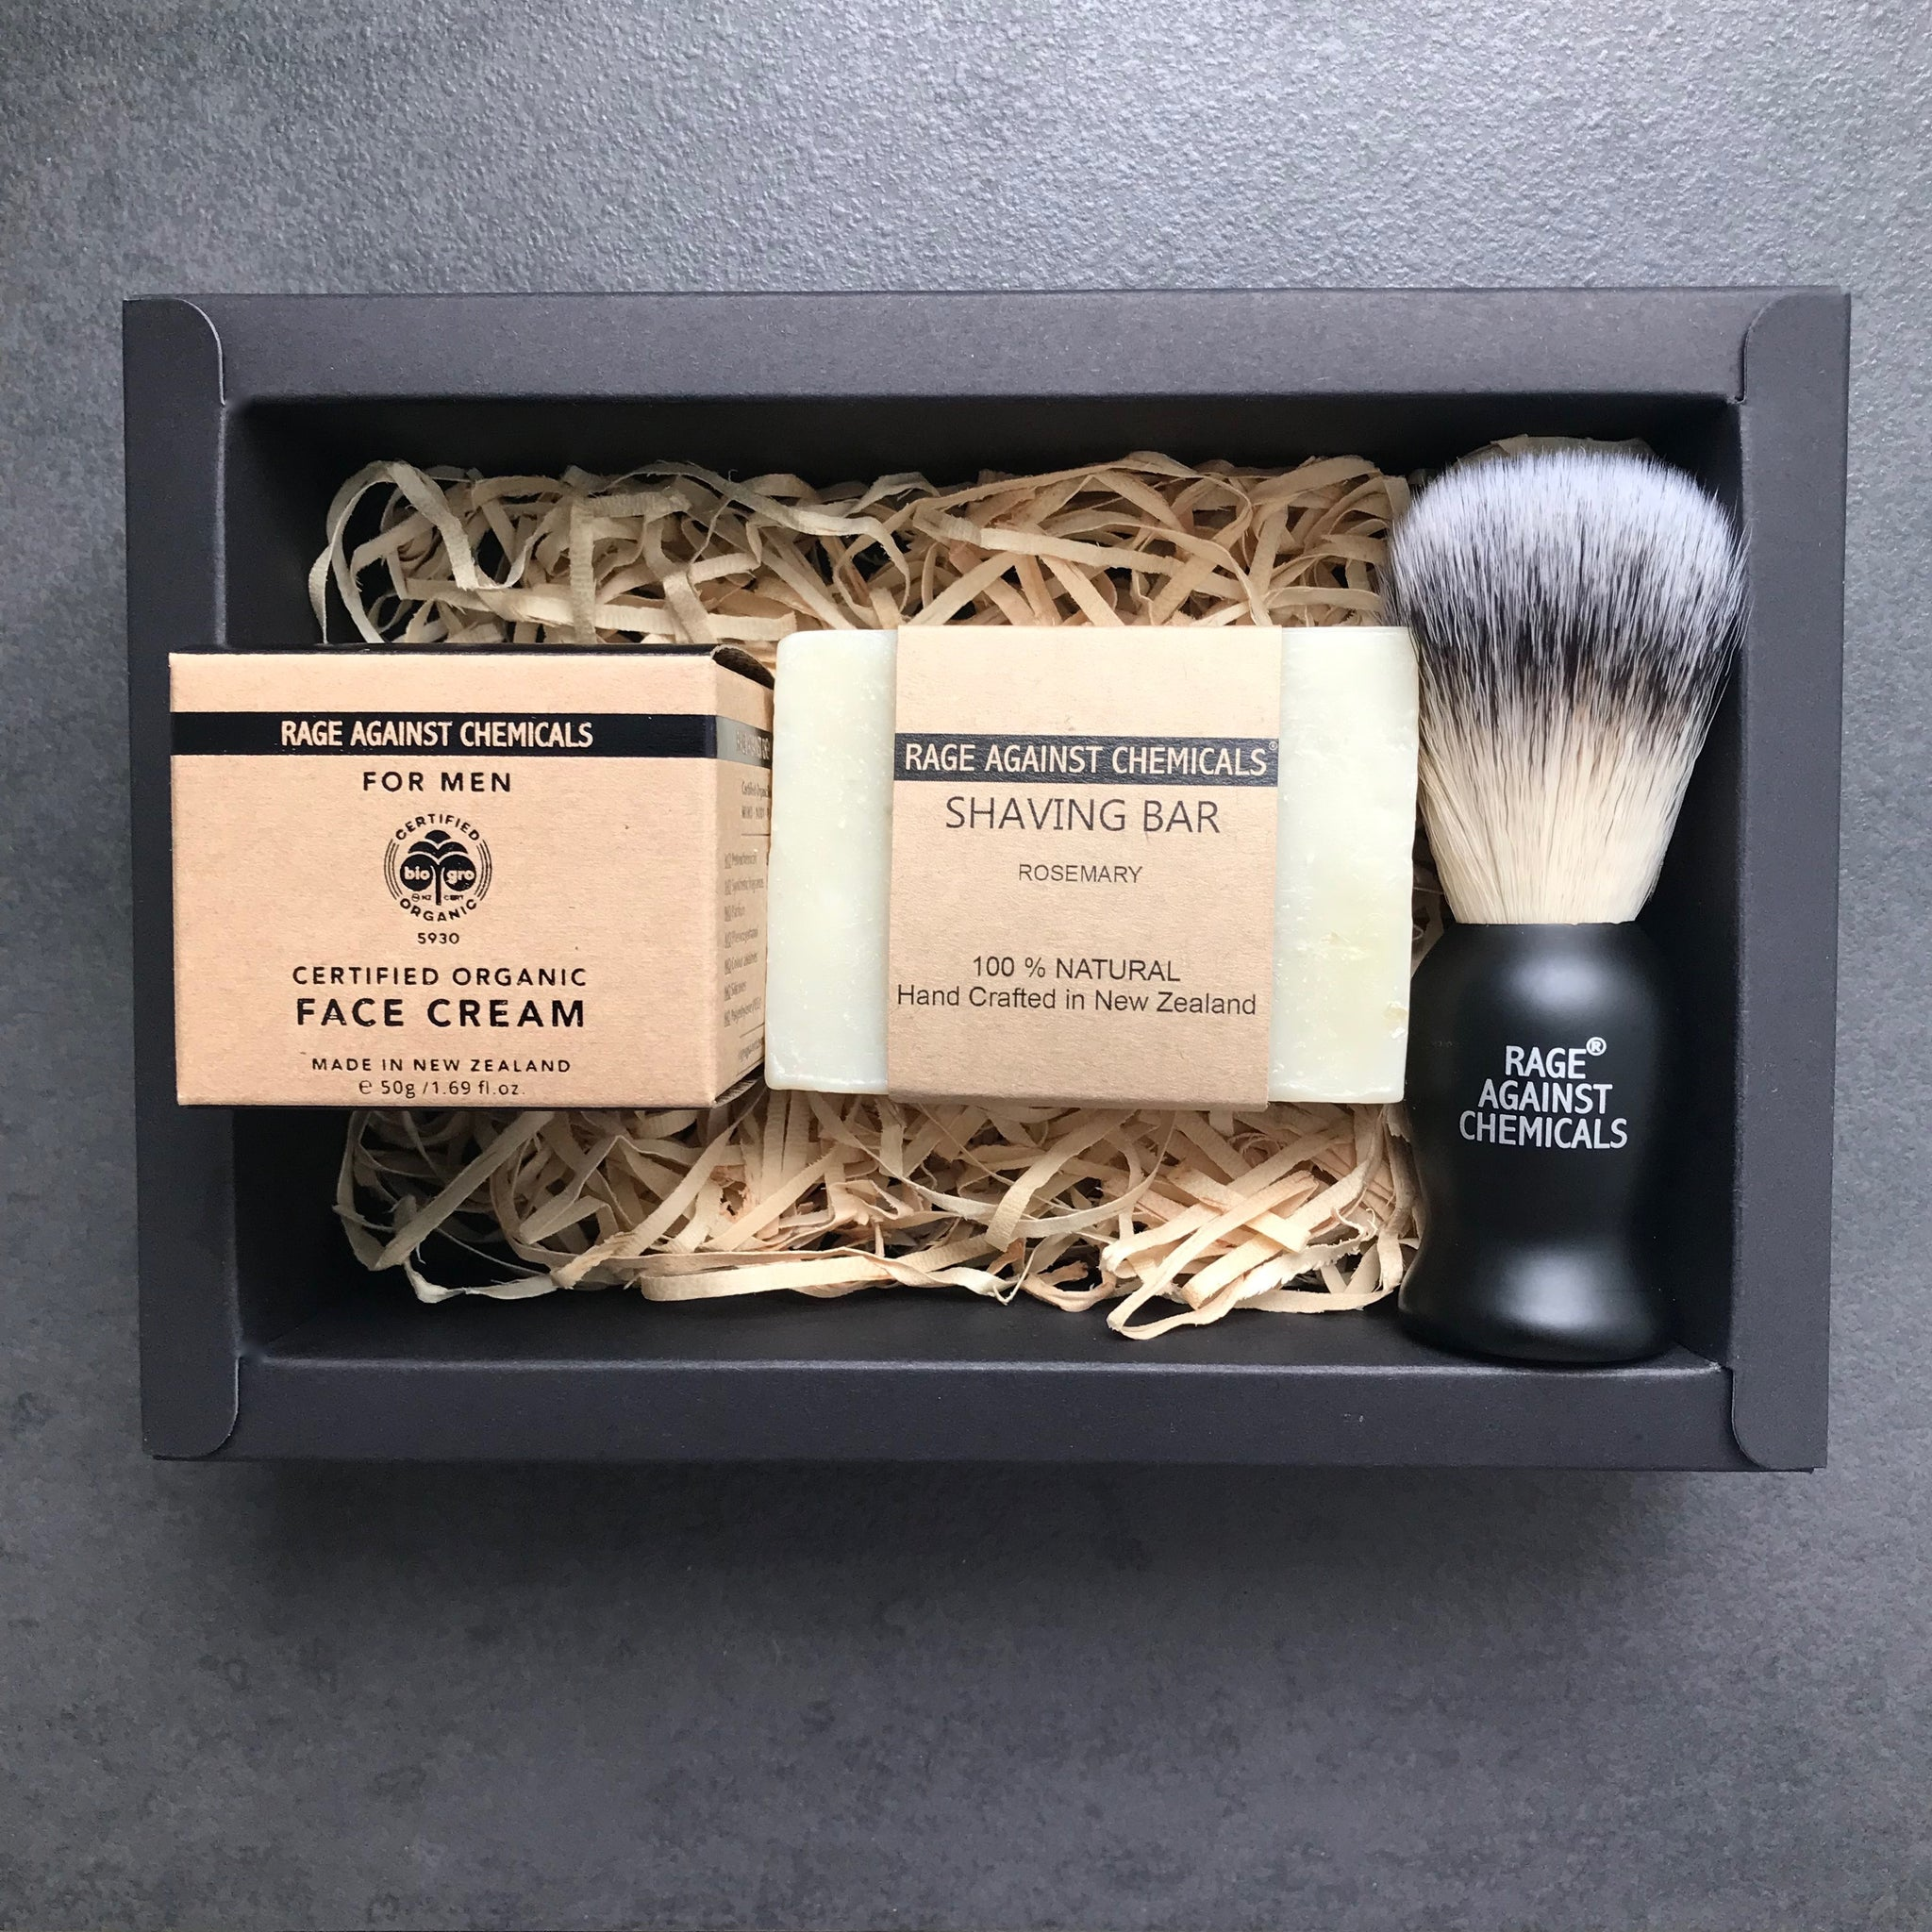 Shaving Brush, Bar and Face Cream Kit  - Certified Organic Skincare - Rage Against Chemicals